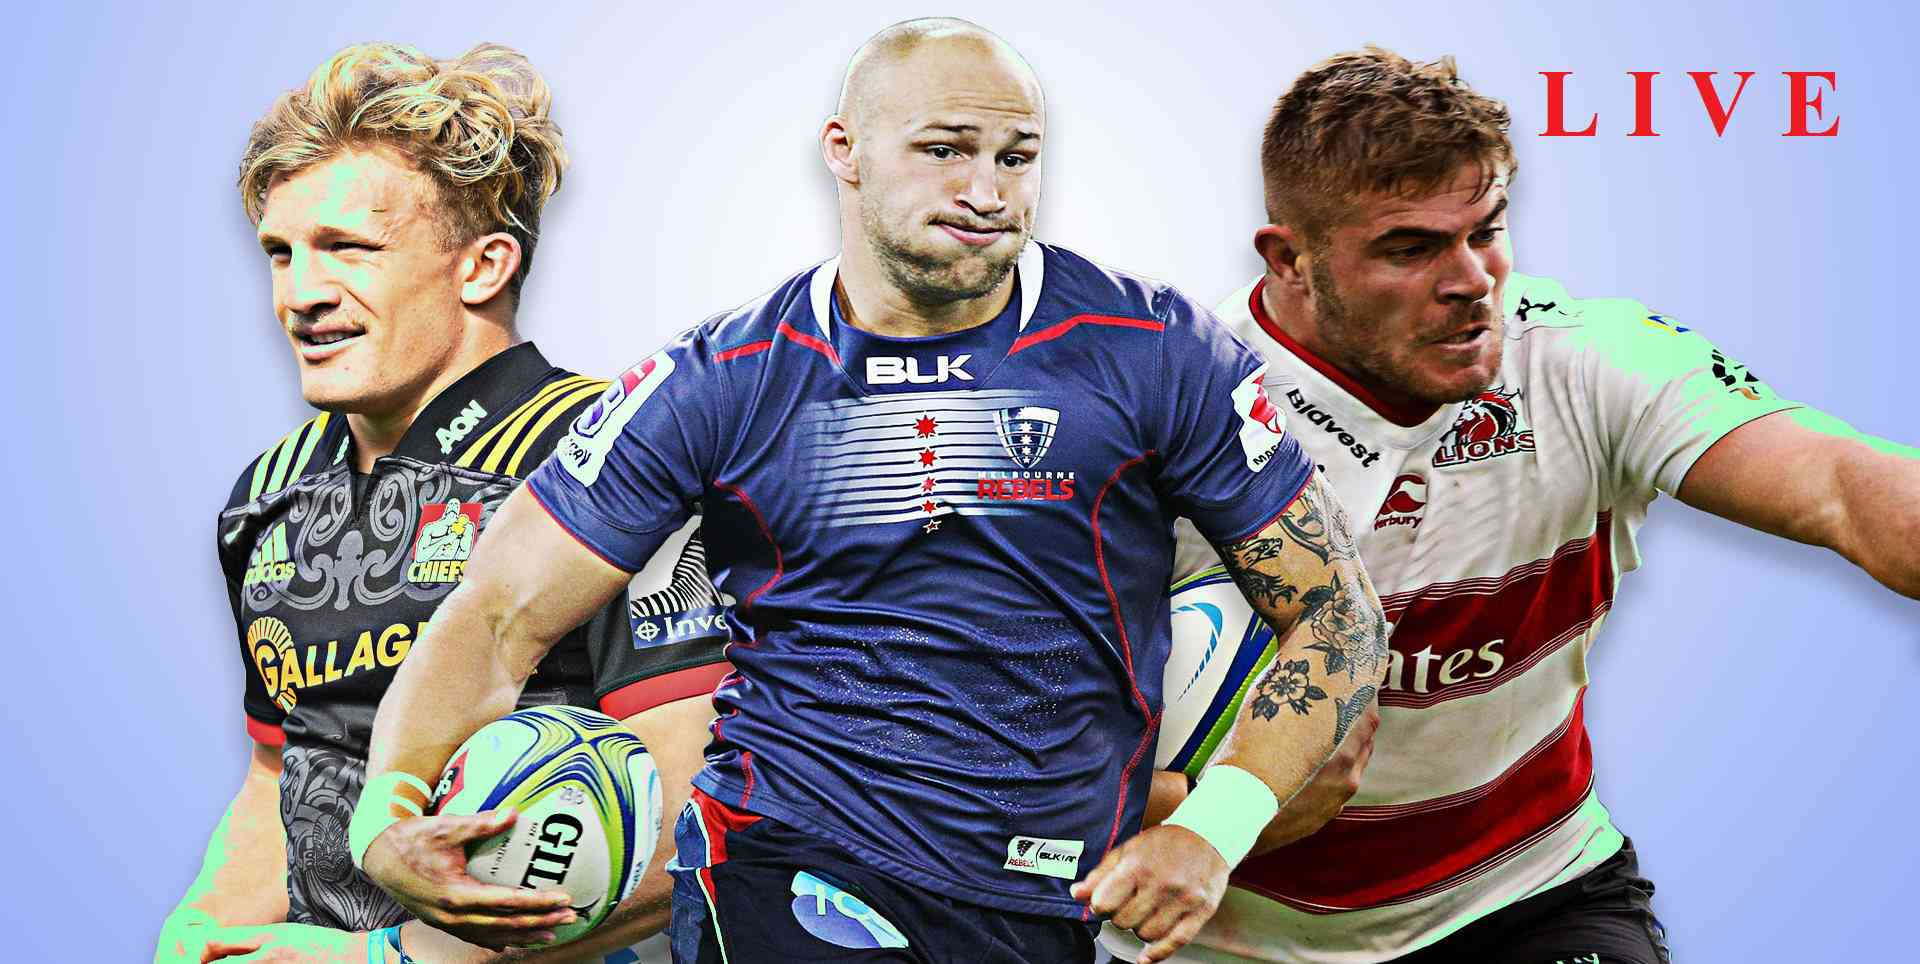 south-wales-waratahs-vs-western-force-rugby-live